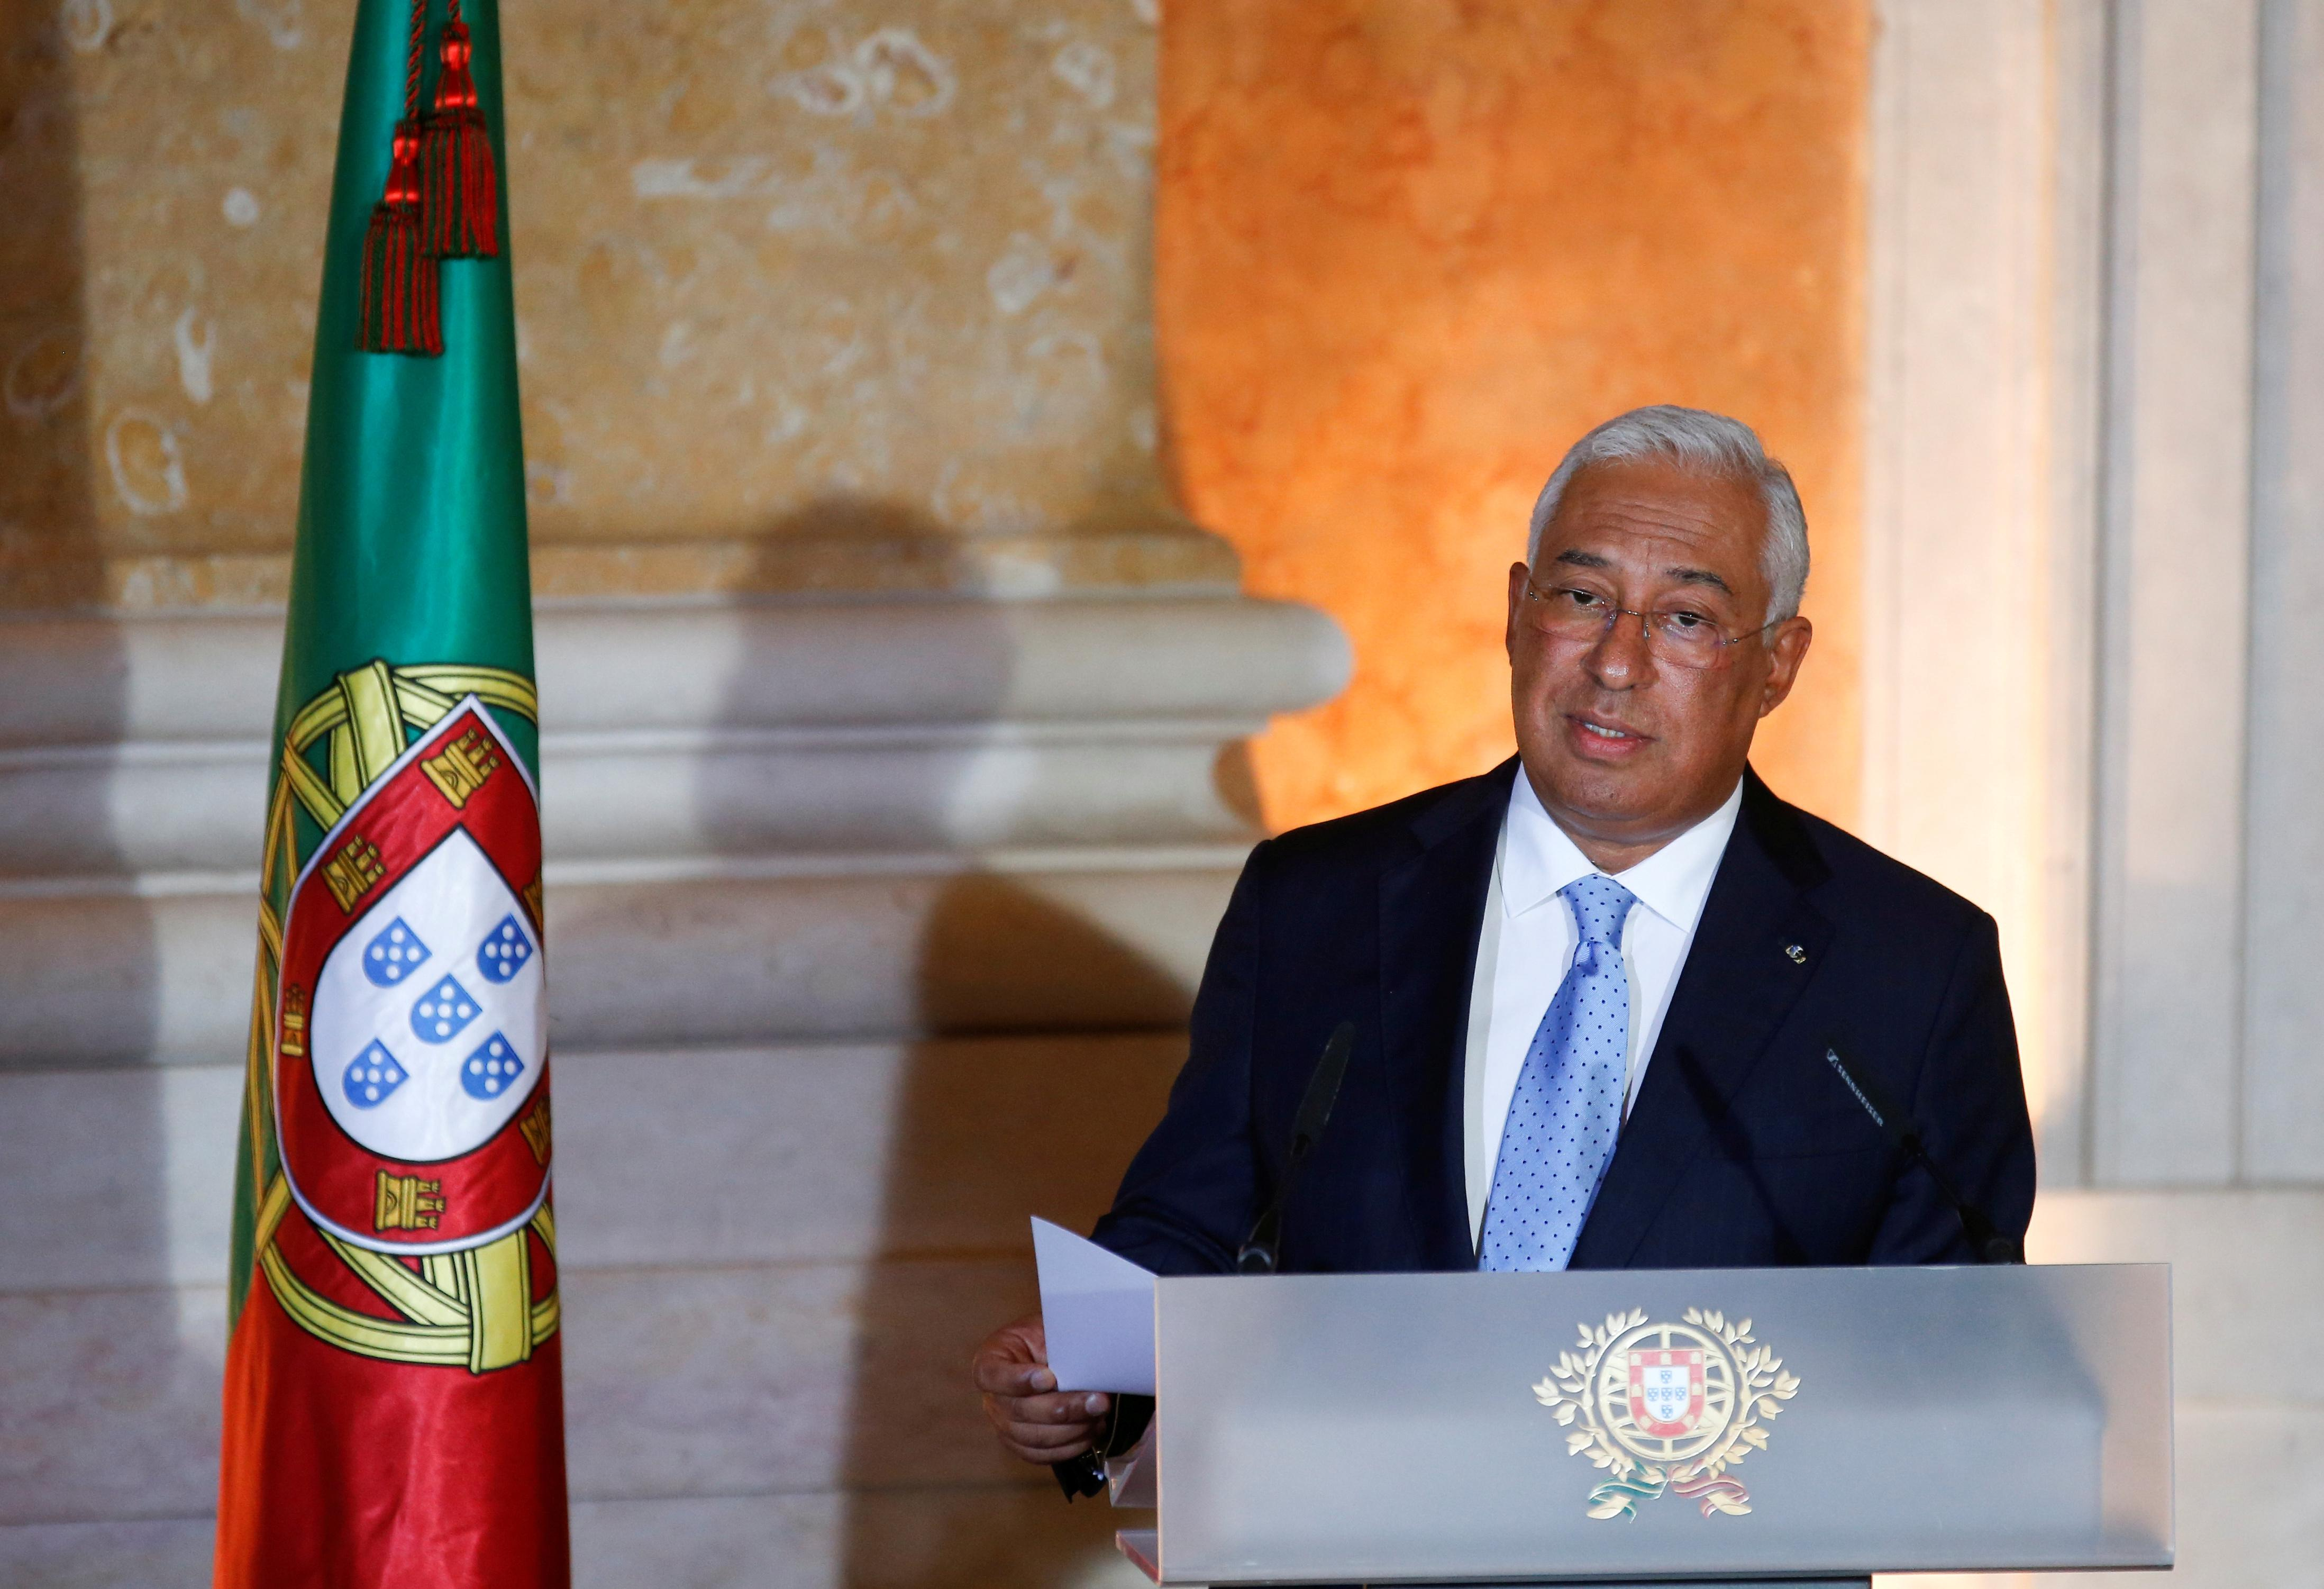 Portugal to raise minimum wage to 635 euros, still lowest in...